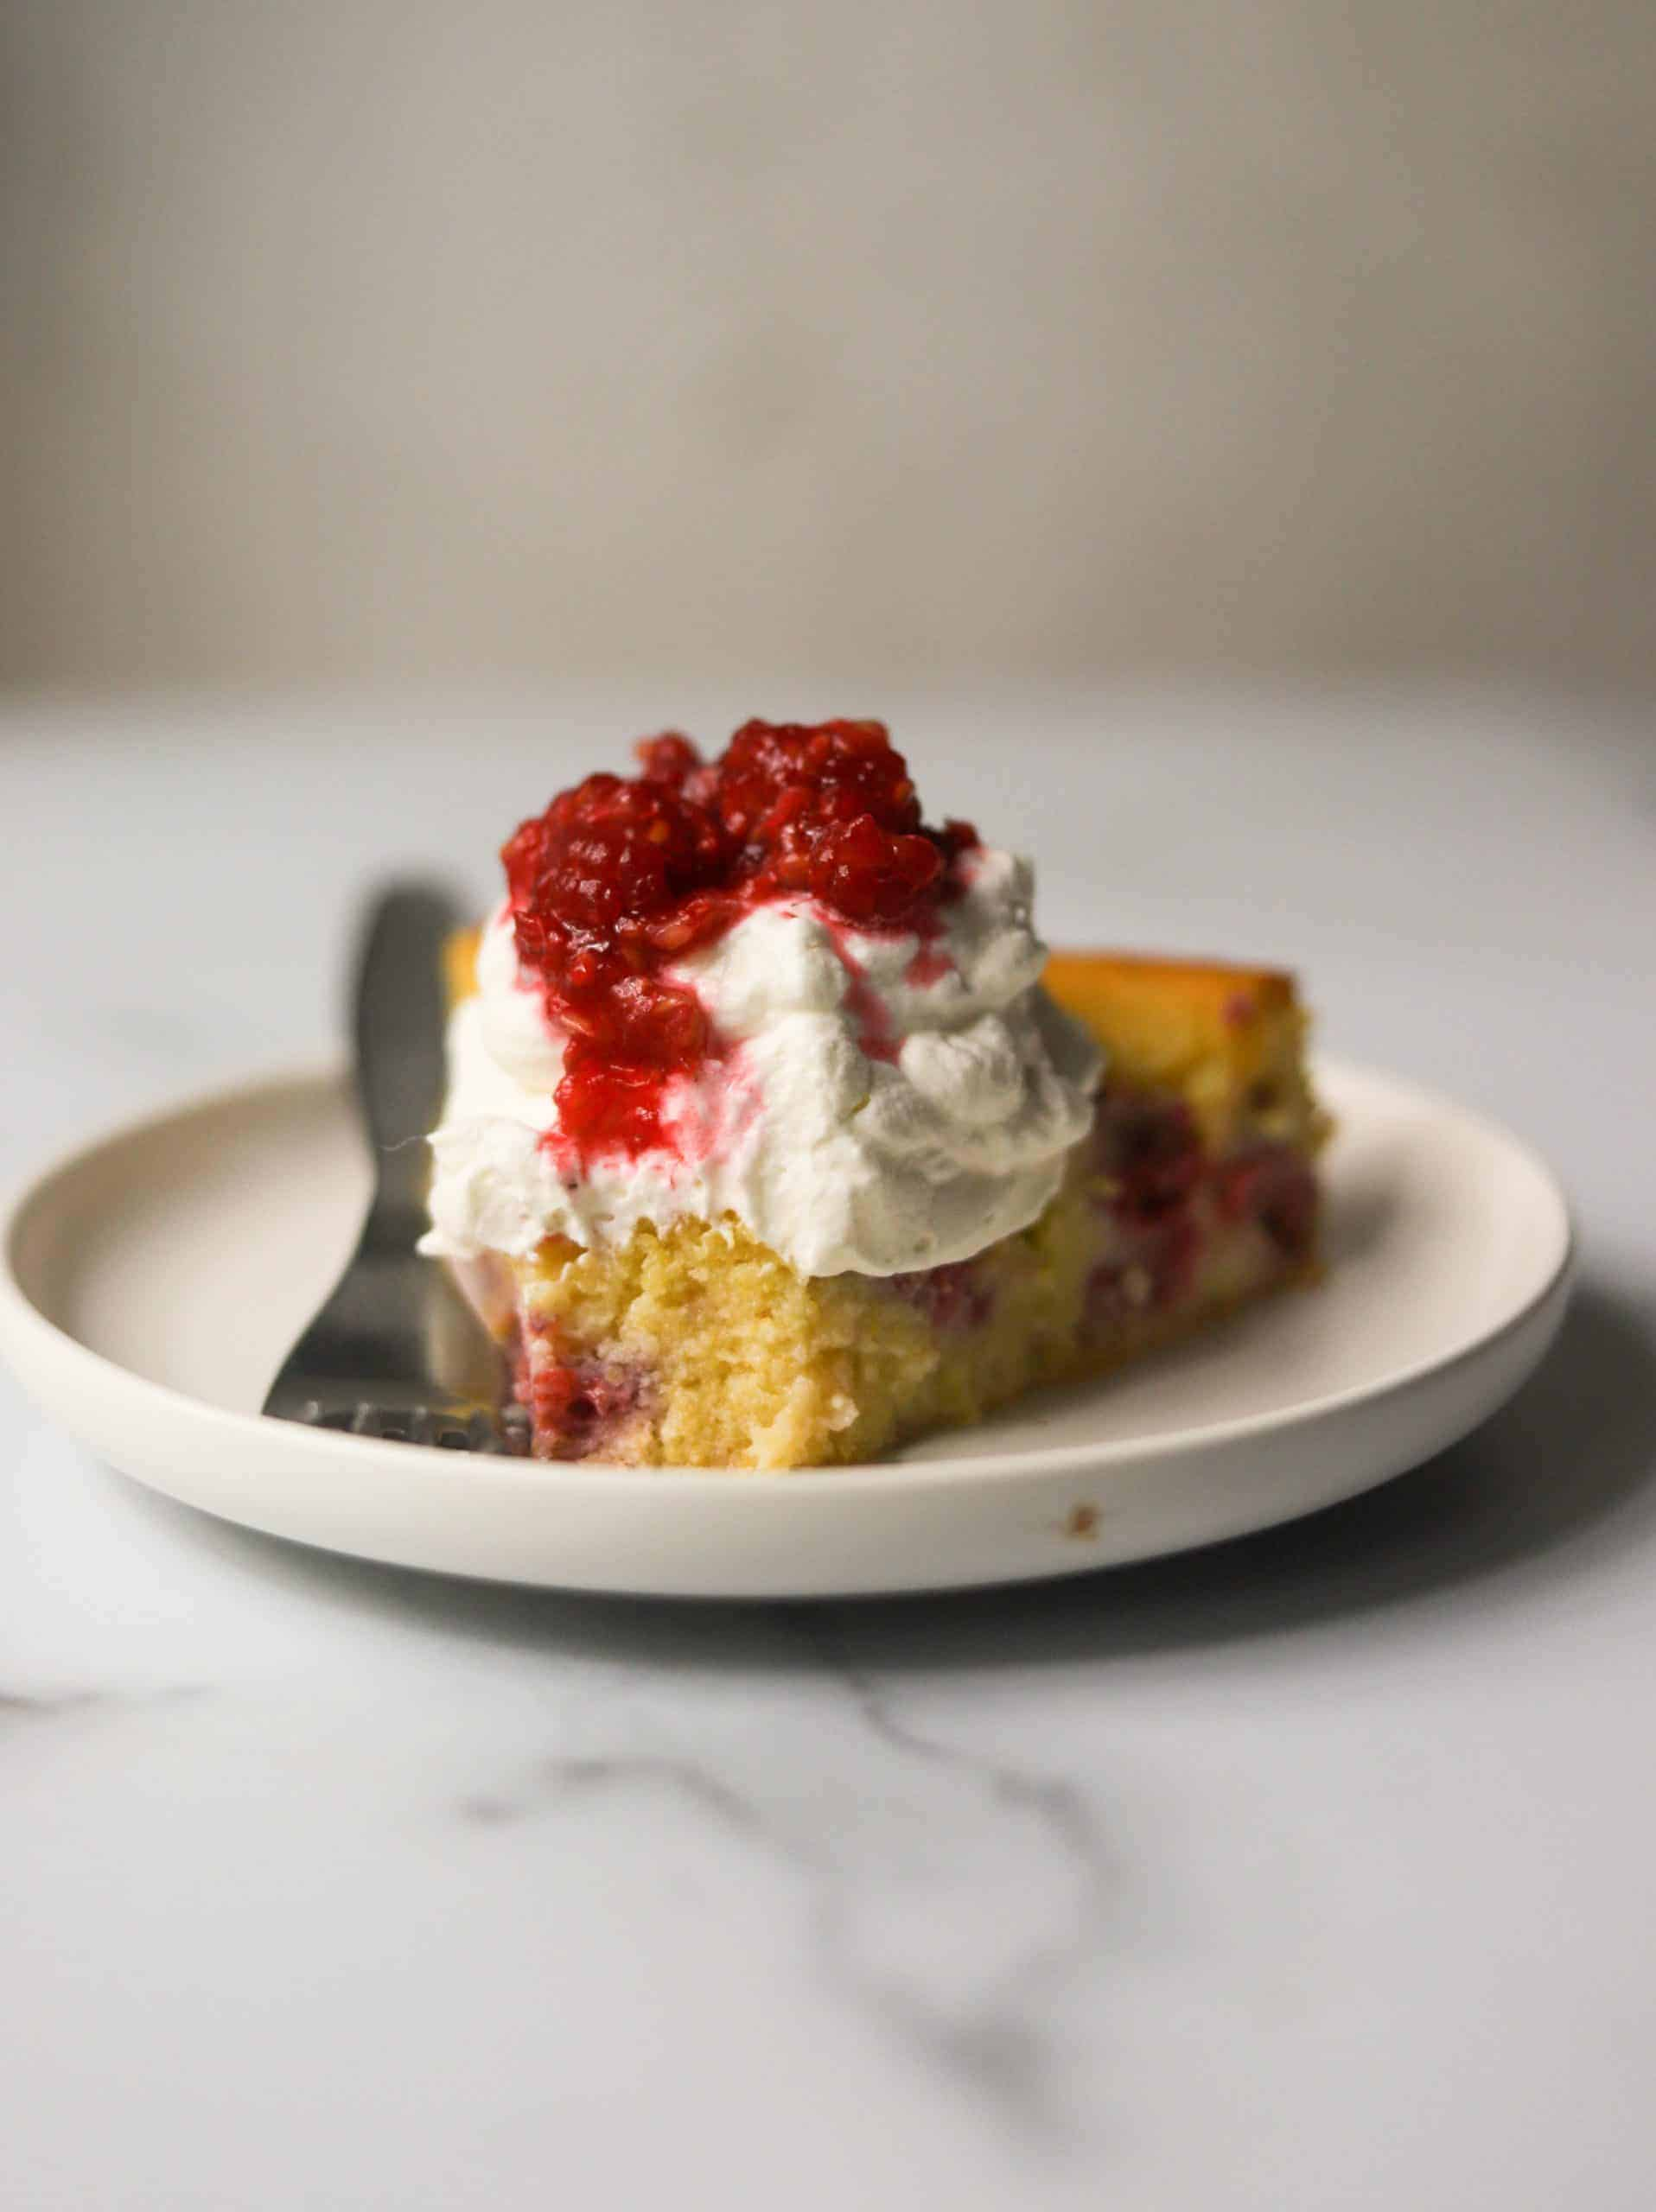 A slice of raspberry cake on a white plate with a bite missing.